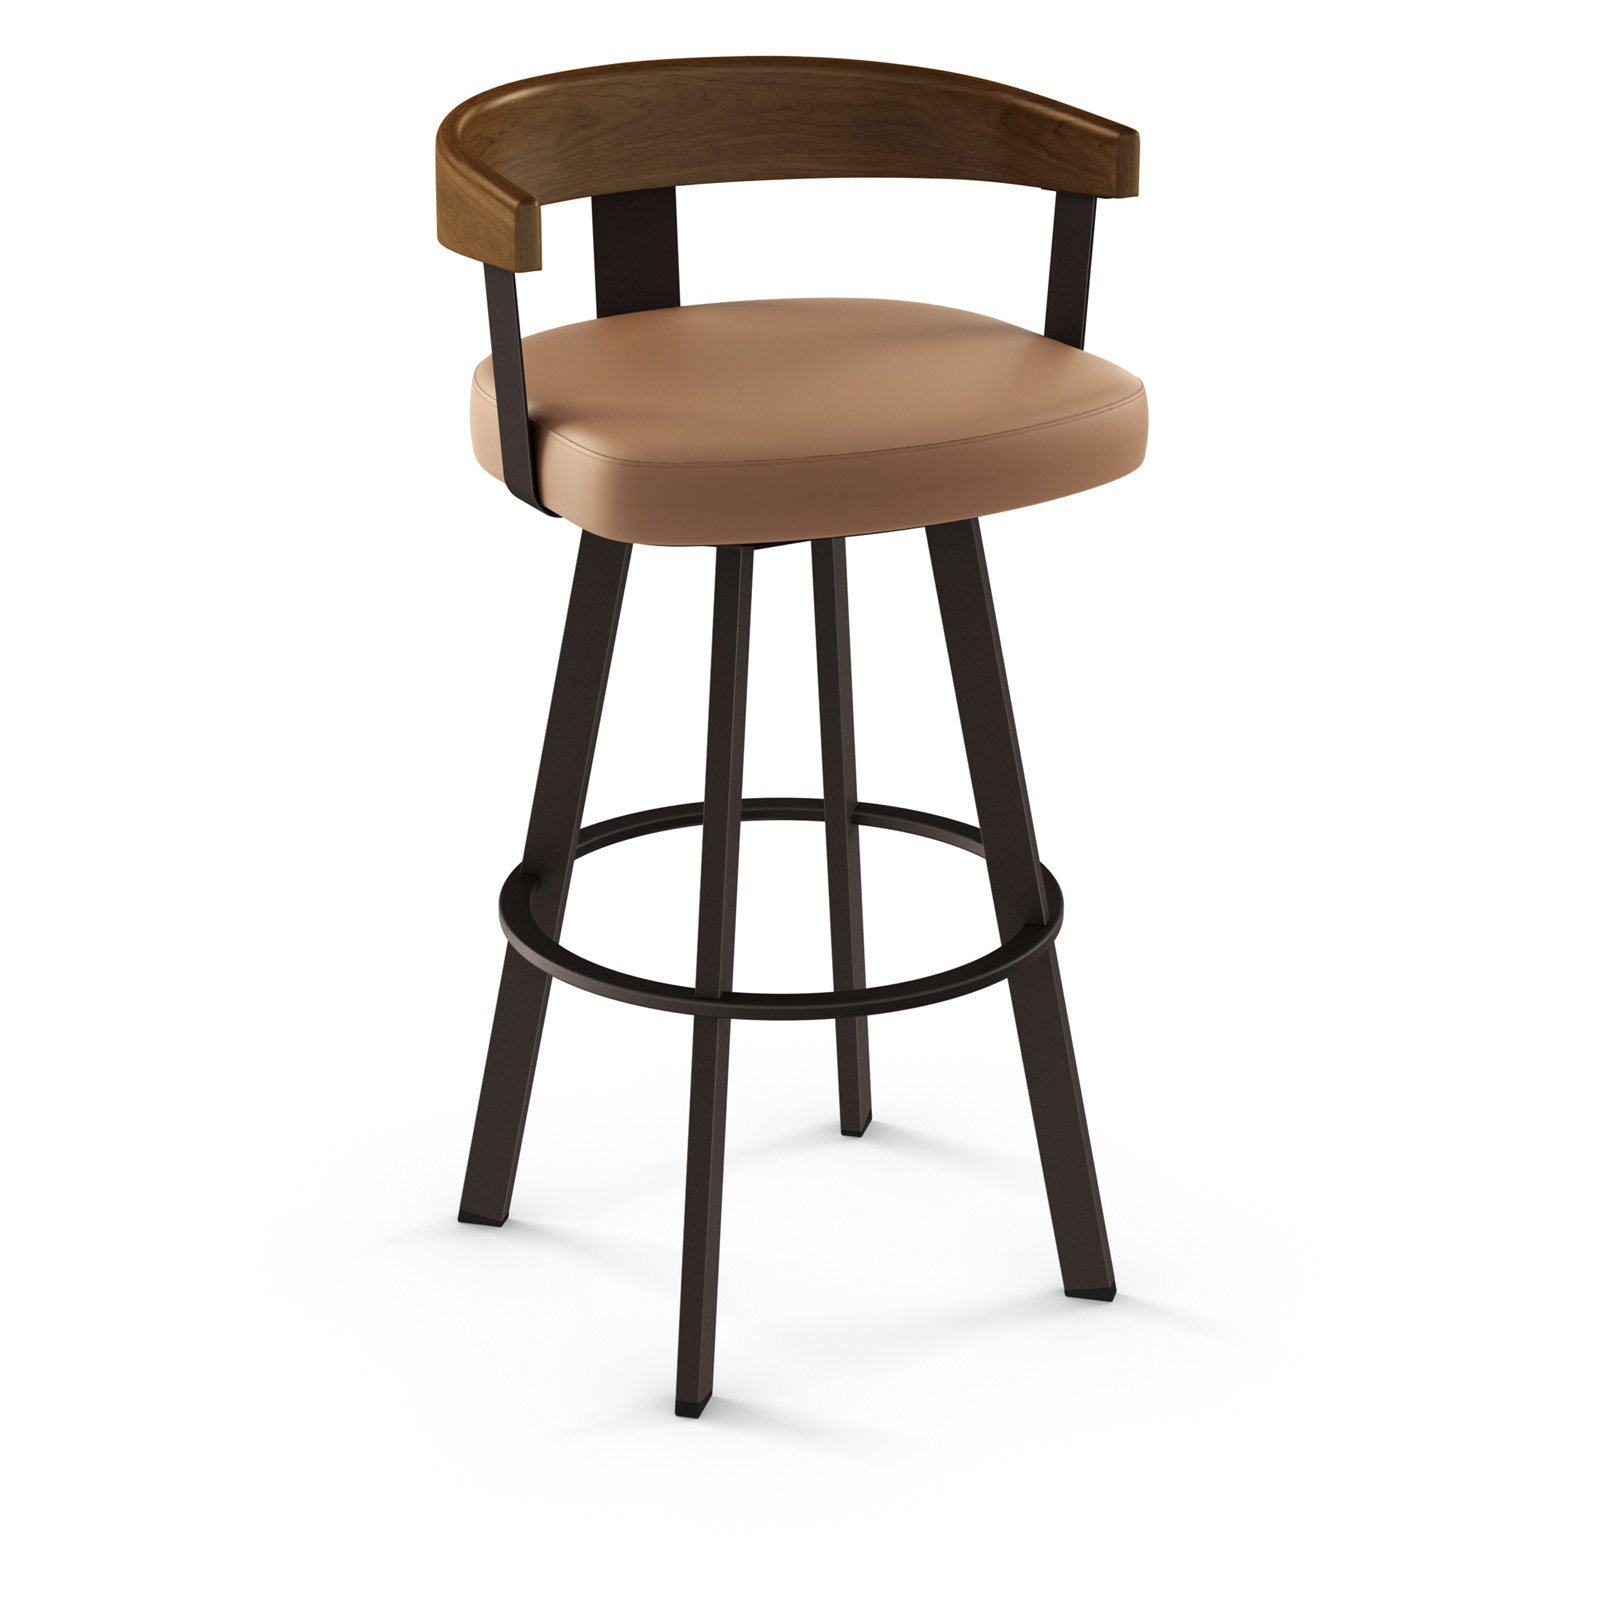 Fantastic Amisco Lars 29 5 Low Back Bar Stool Andrewgaddart Wooden Chair Designs For Living Room Andrewgaddartcom